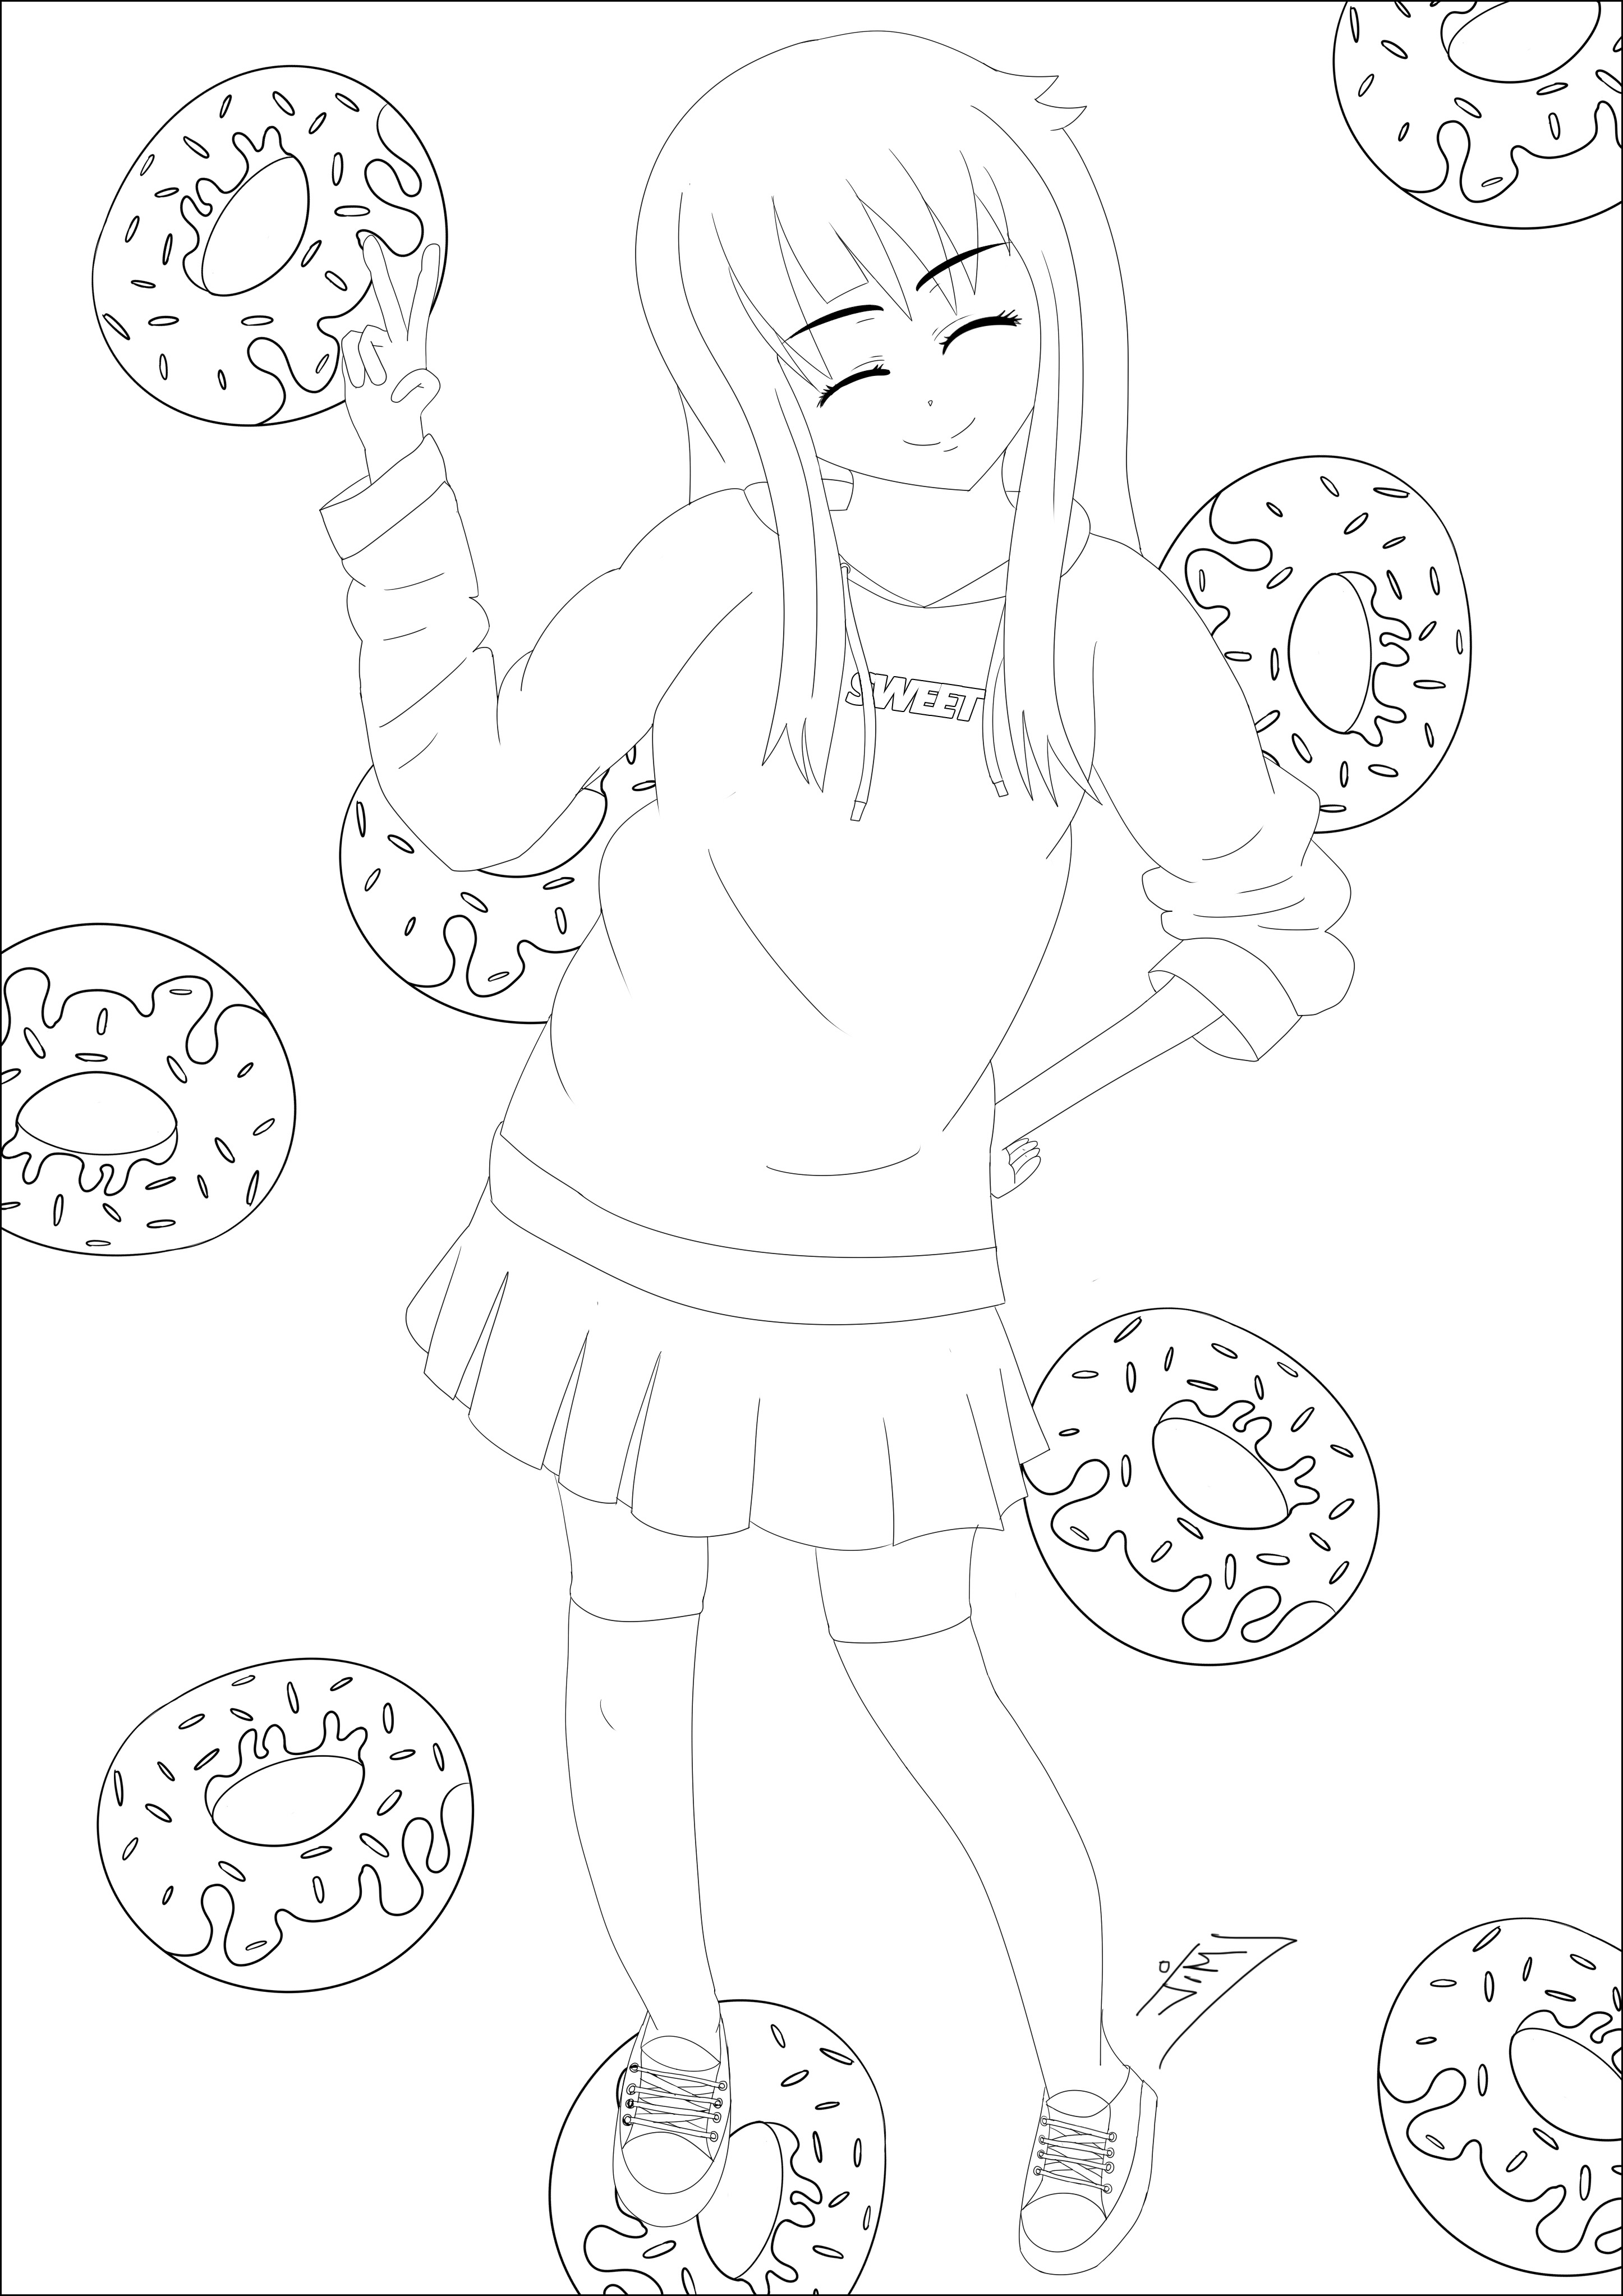 Sweet Donuts Girl Mangas Animes Coloriages Difficiles Pour